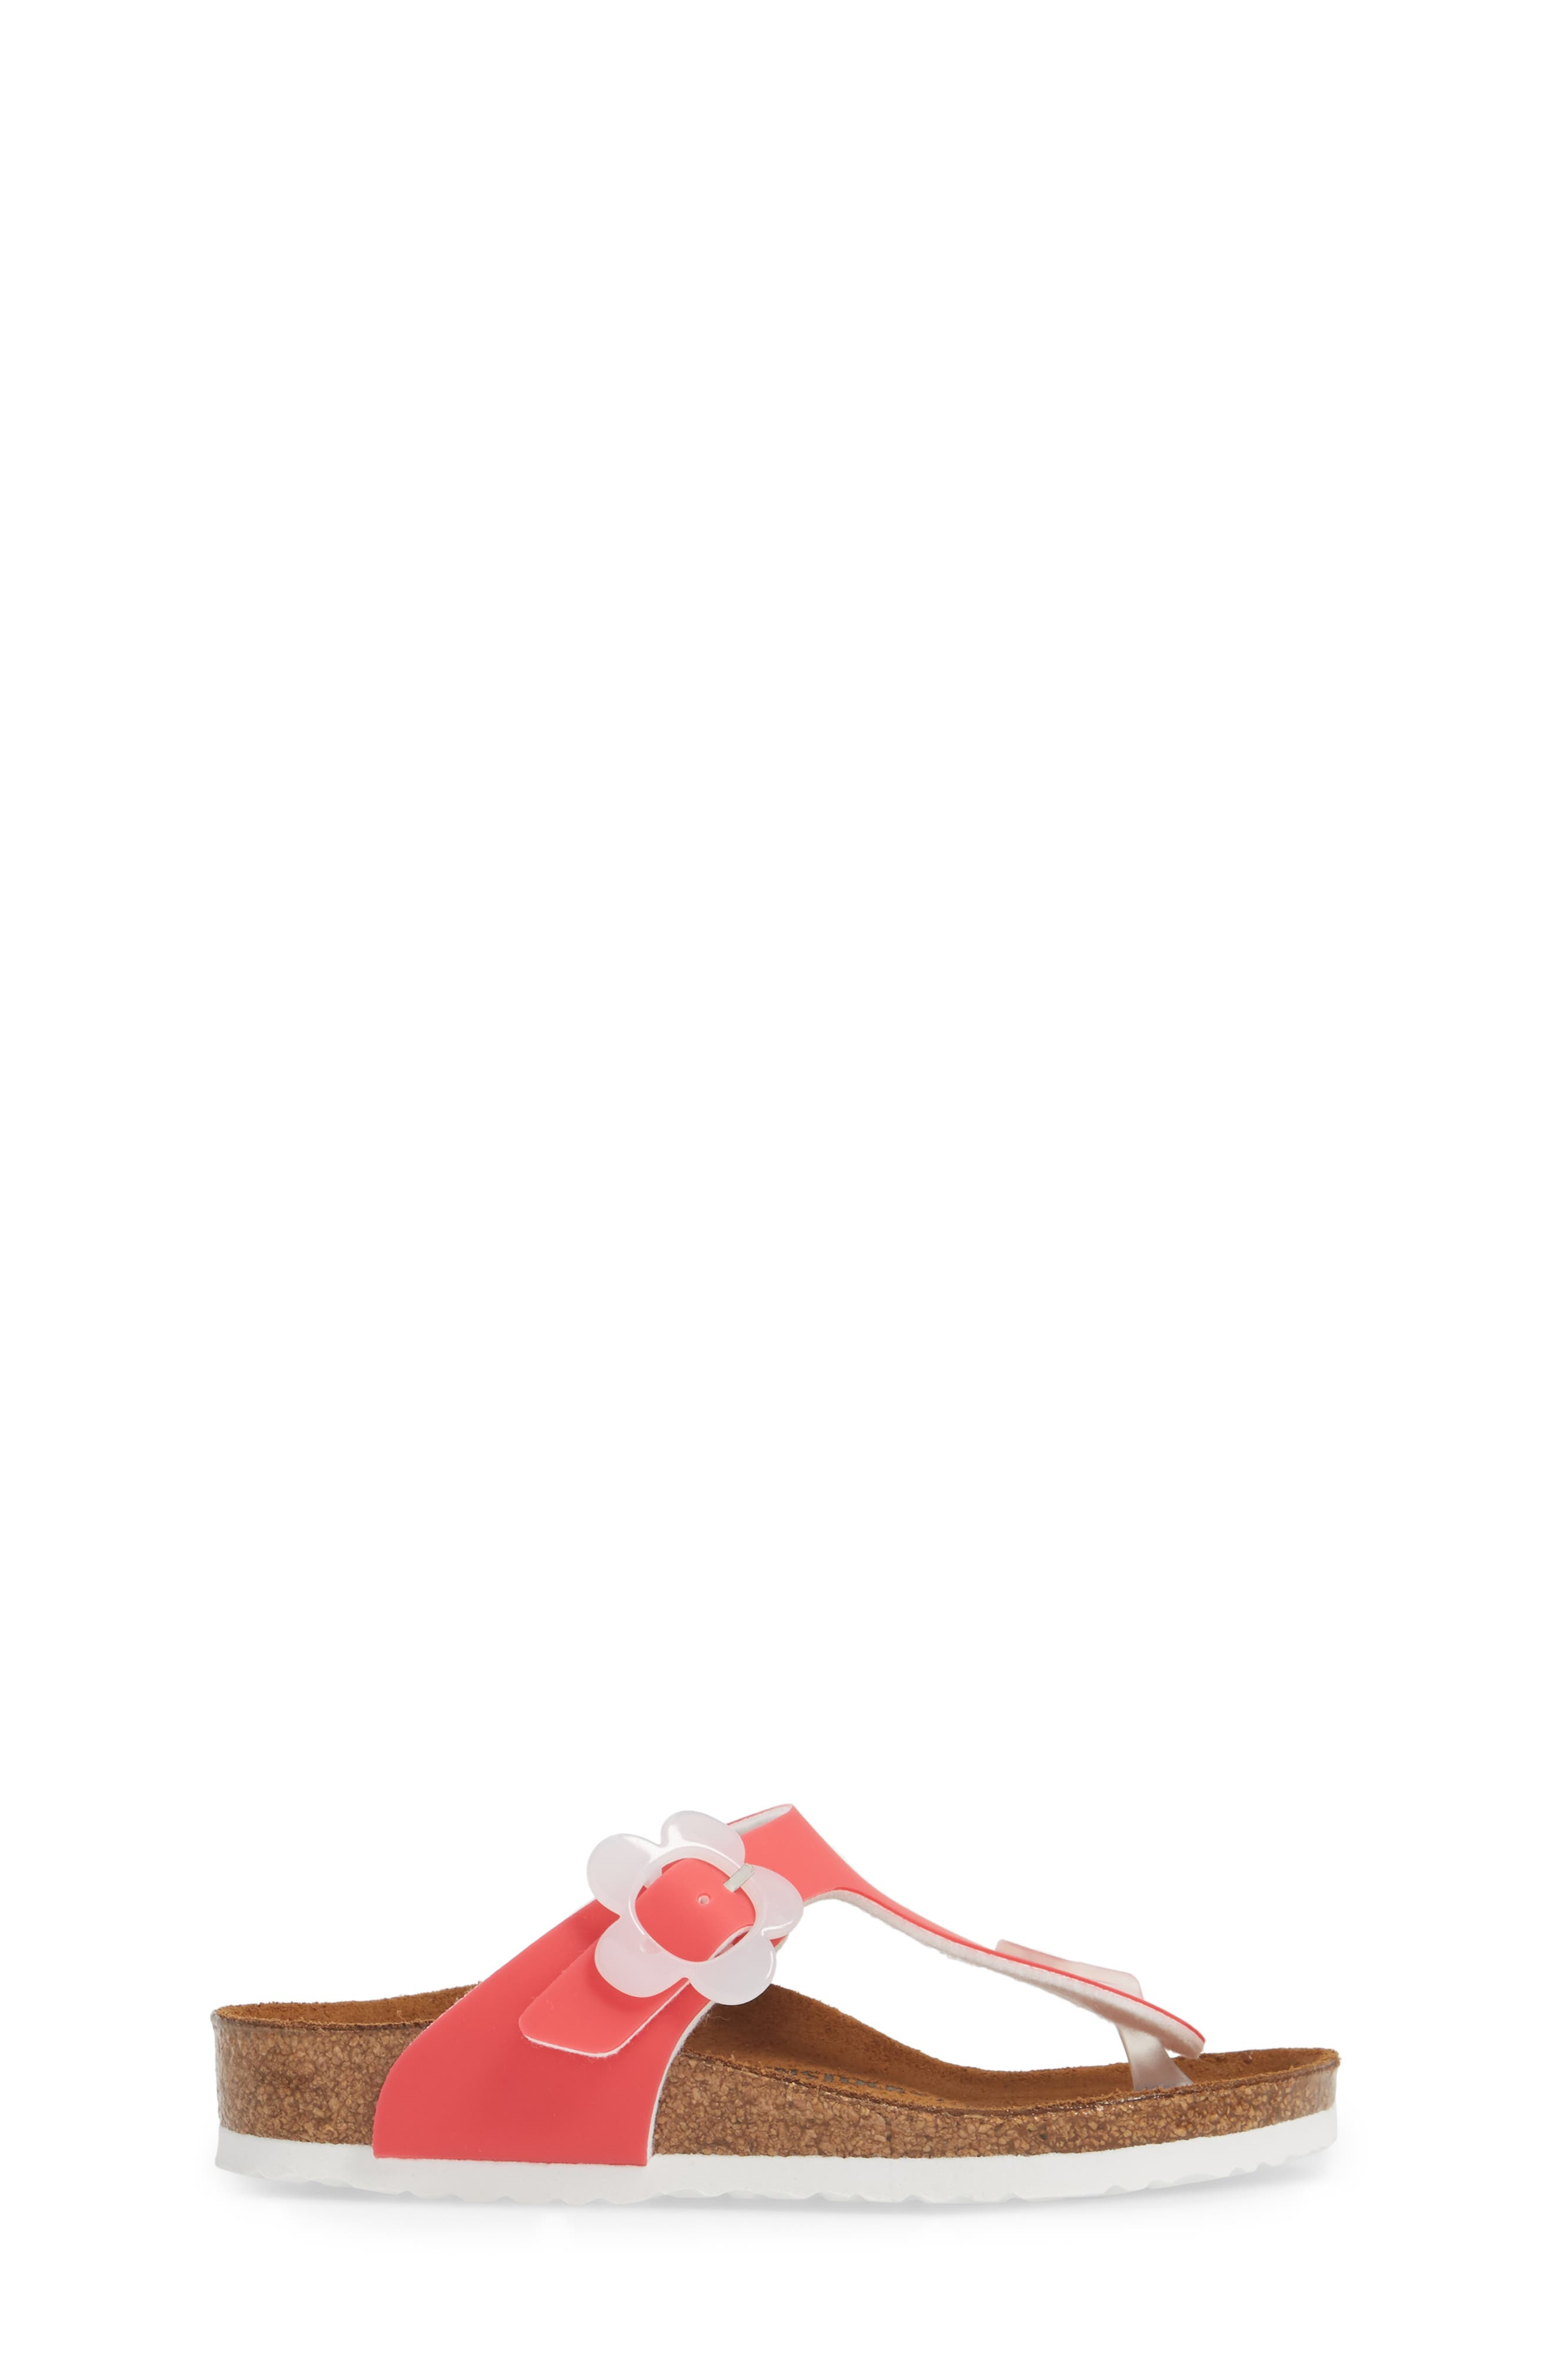 Gizeh Flowered Thong Sandal,                             Alternate thumbnail 3, color,                             650